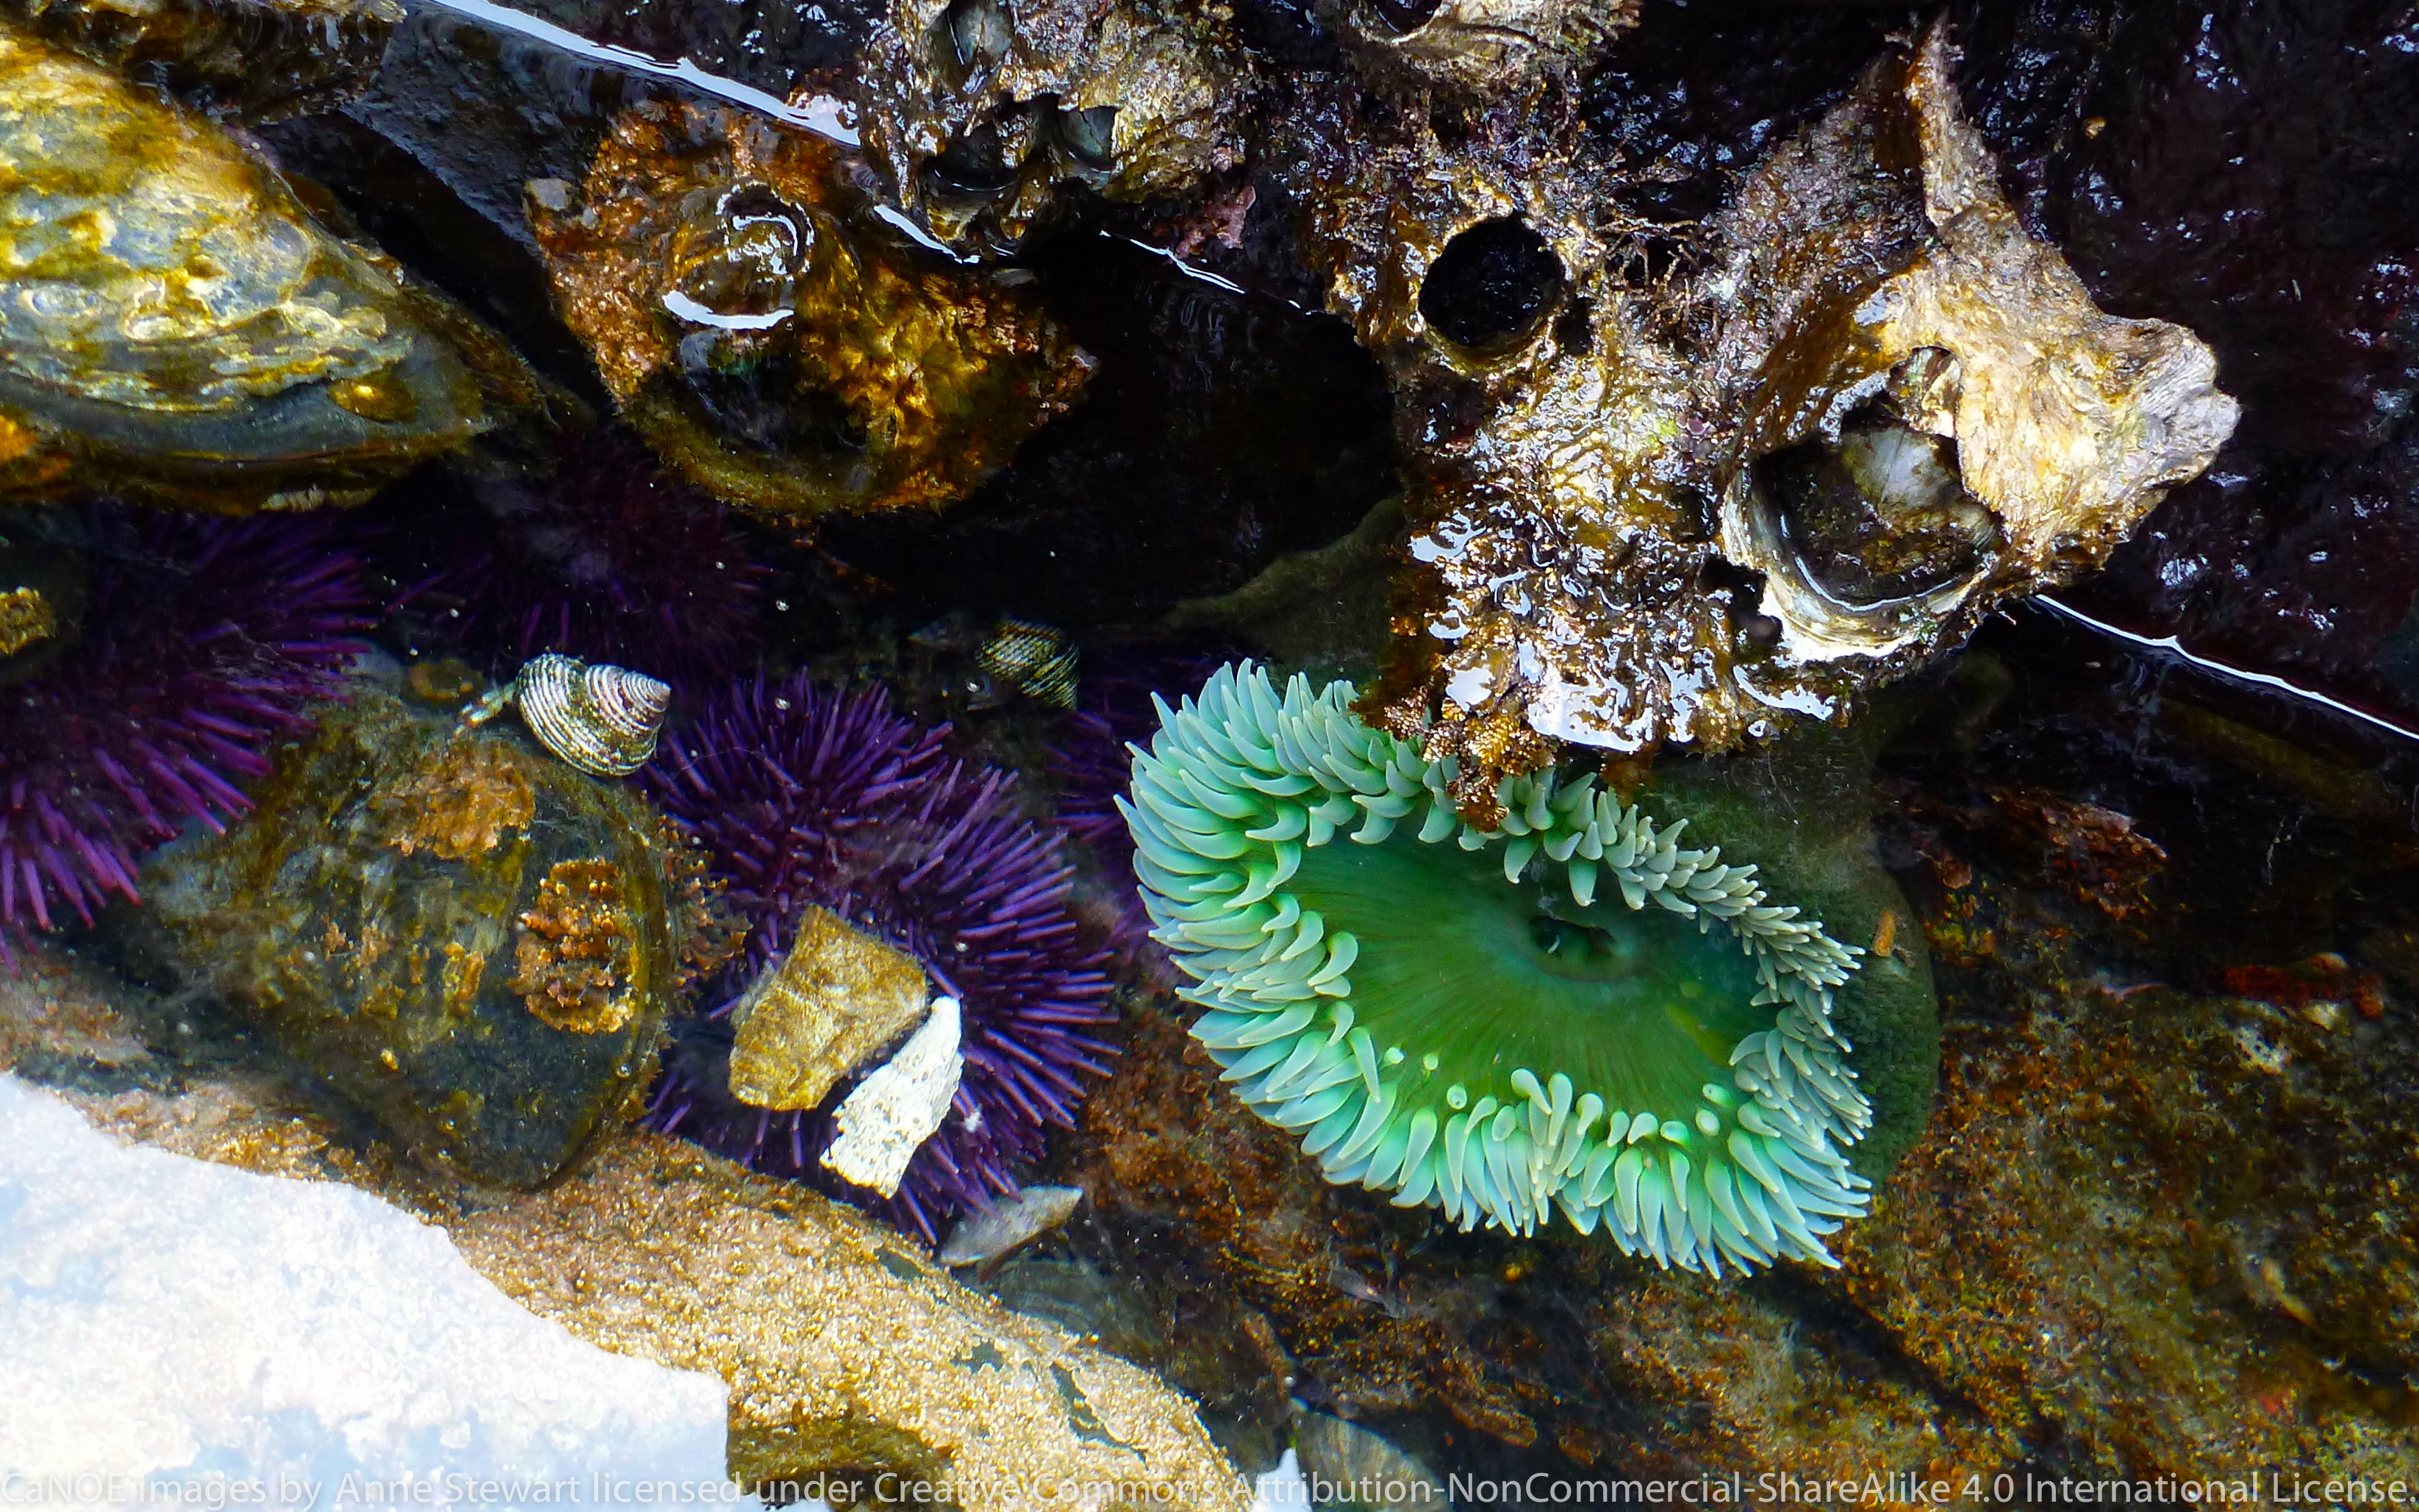 Giant green anemone in pool.JPG